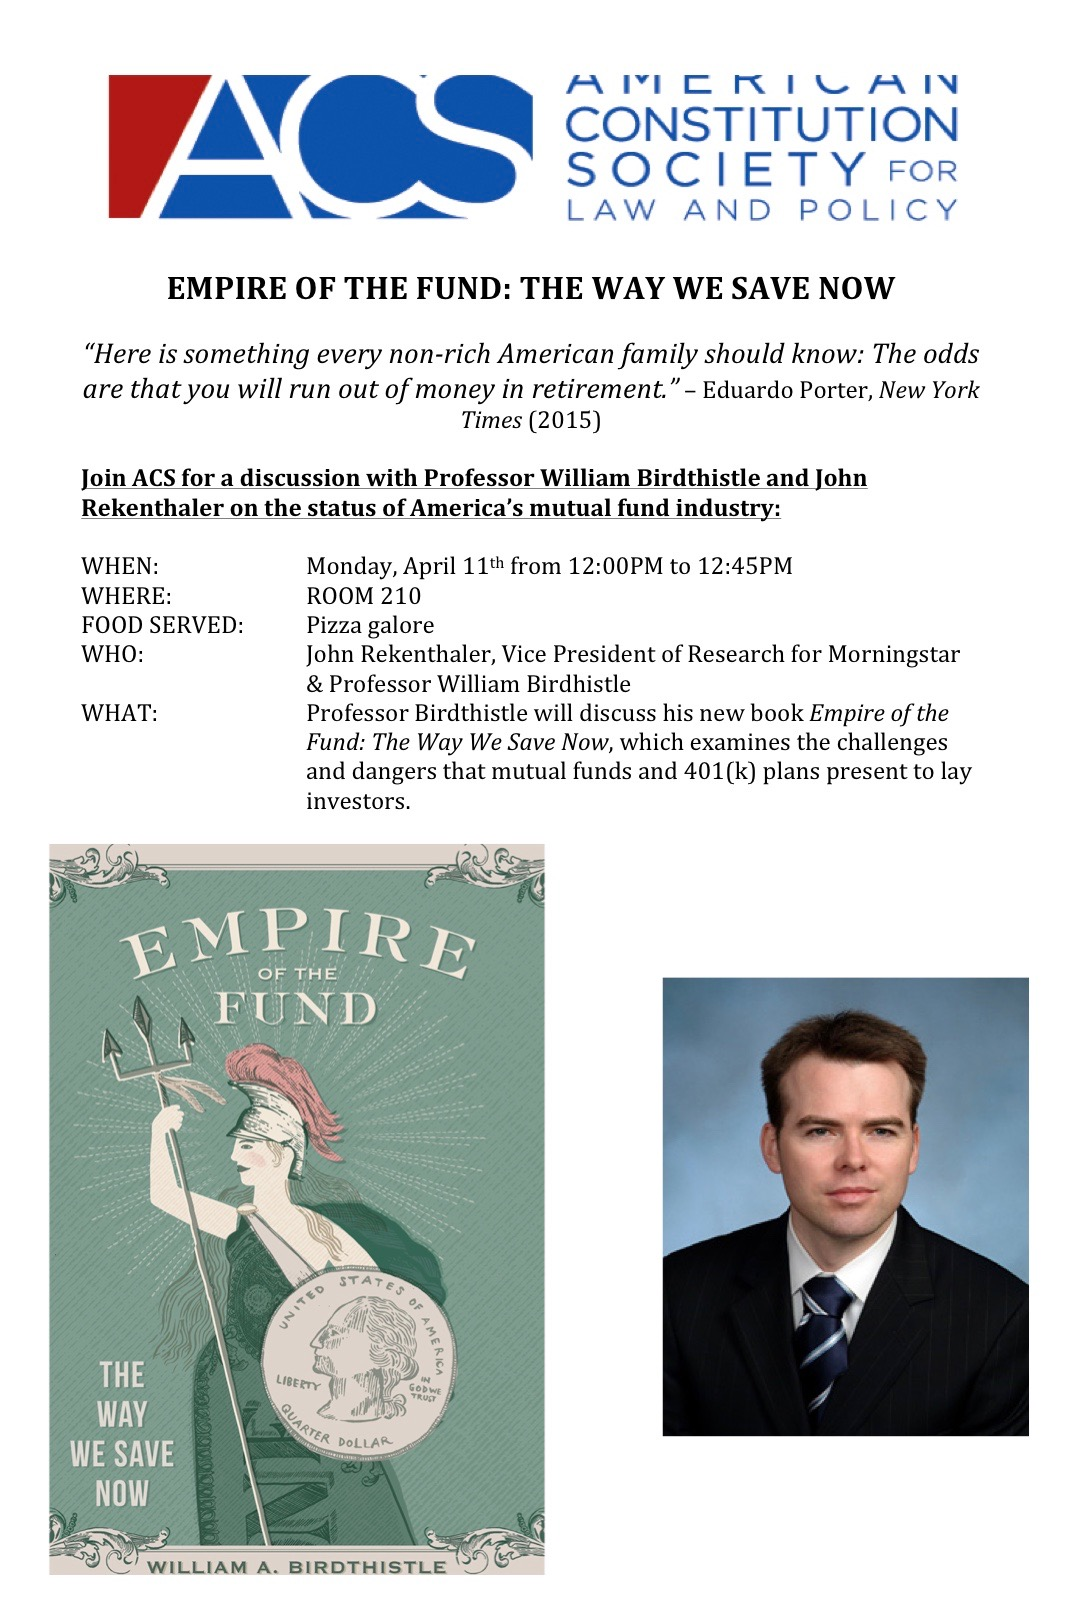 Empire of the Fund Event Presented by ACS